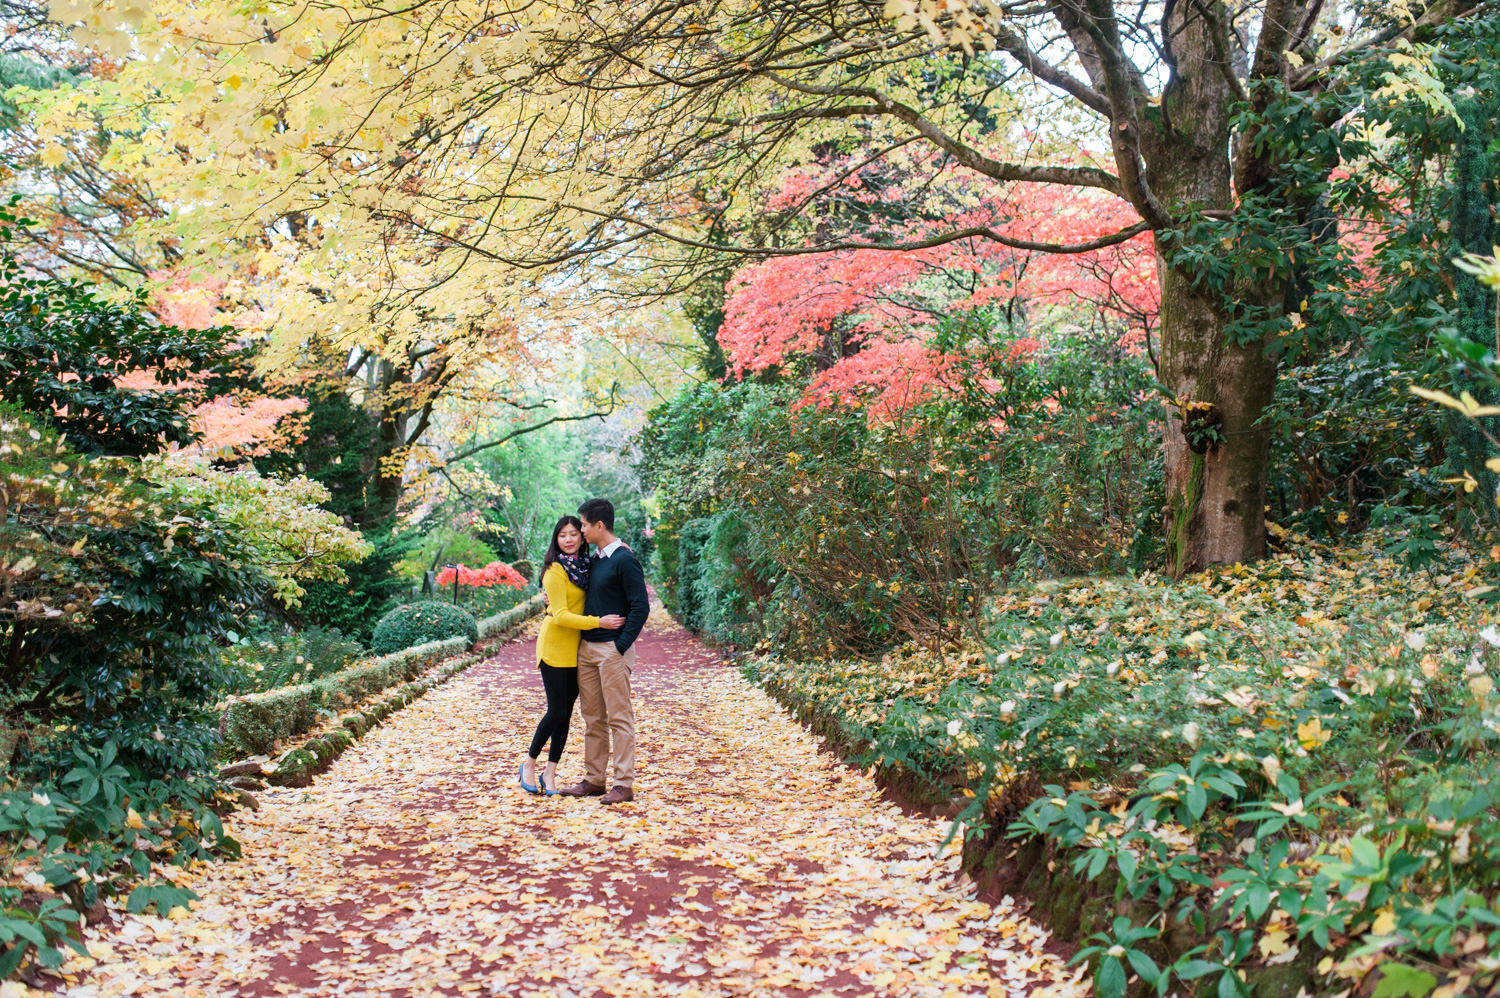 melbourne-australia-pre-wedding-casual-engagement-destination-wedding-autumn-themed-the-wedding-notebook